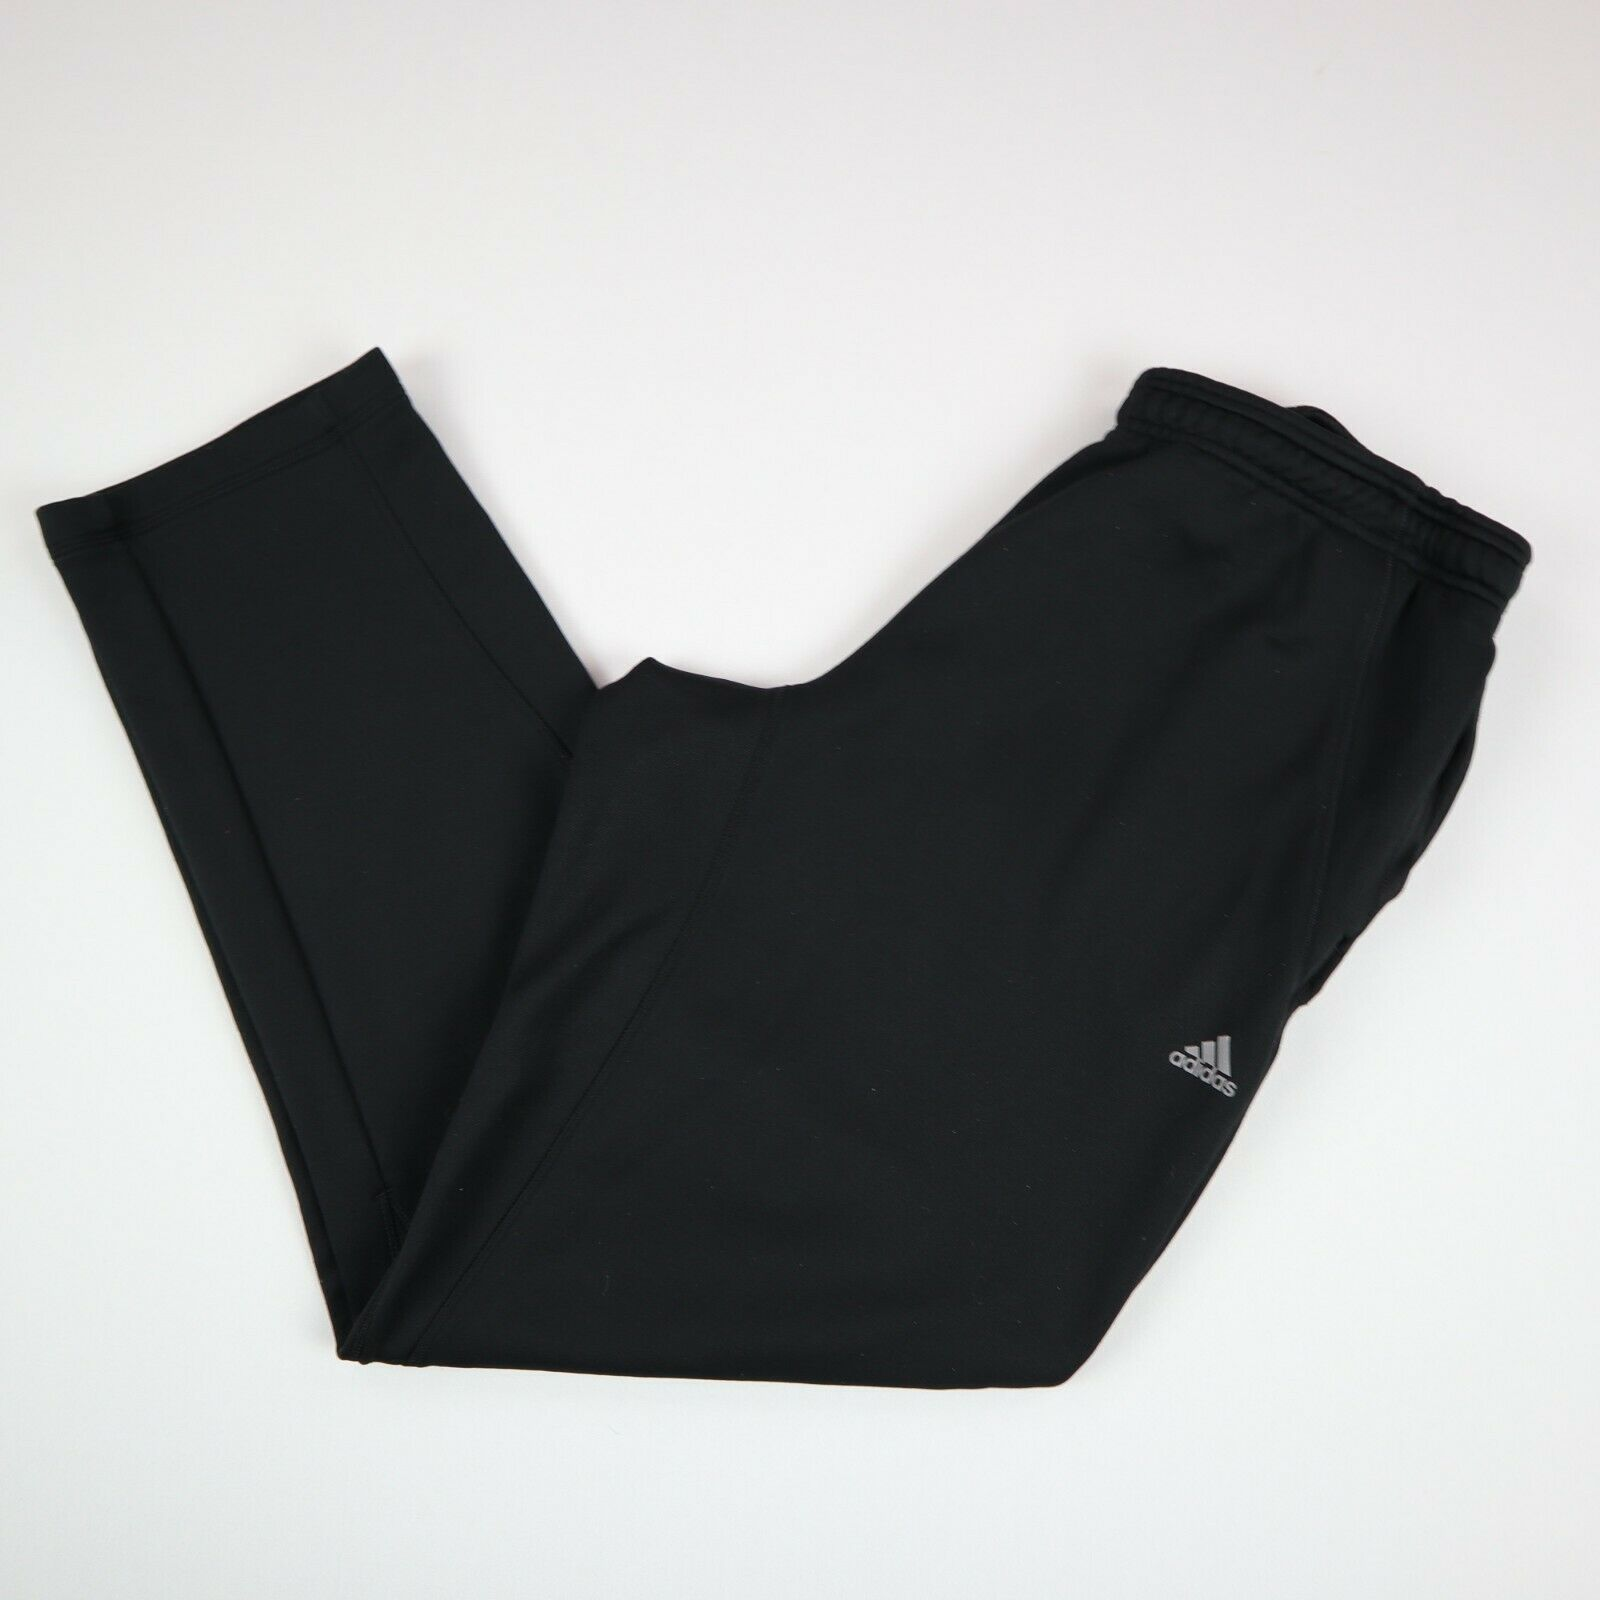 Adidas Womens Joggers Jogging Running Bottoms Used Vintage Track Pants Black XL